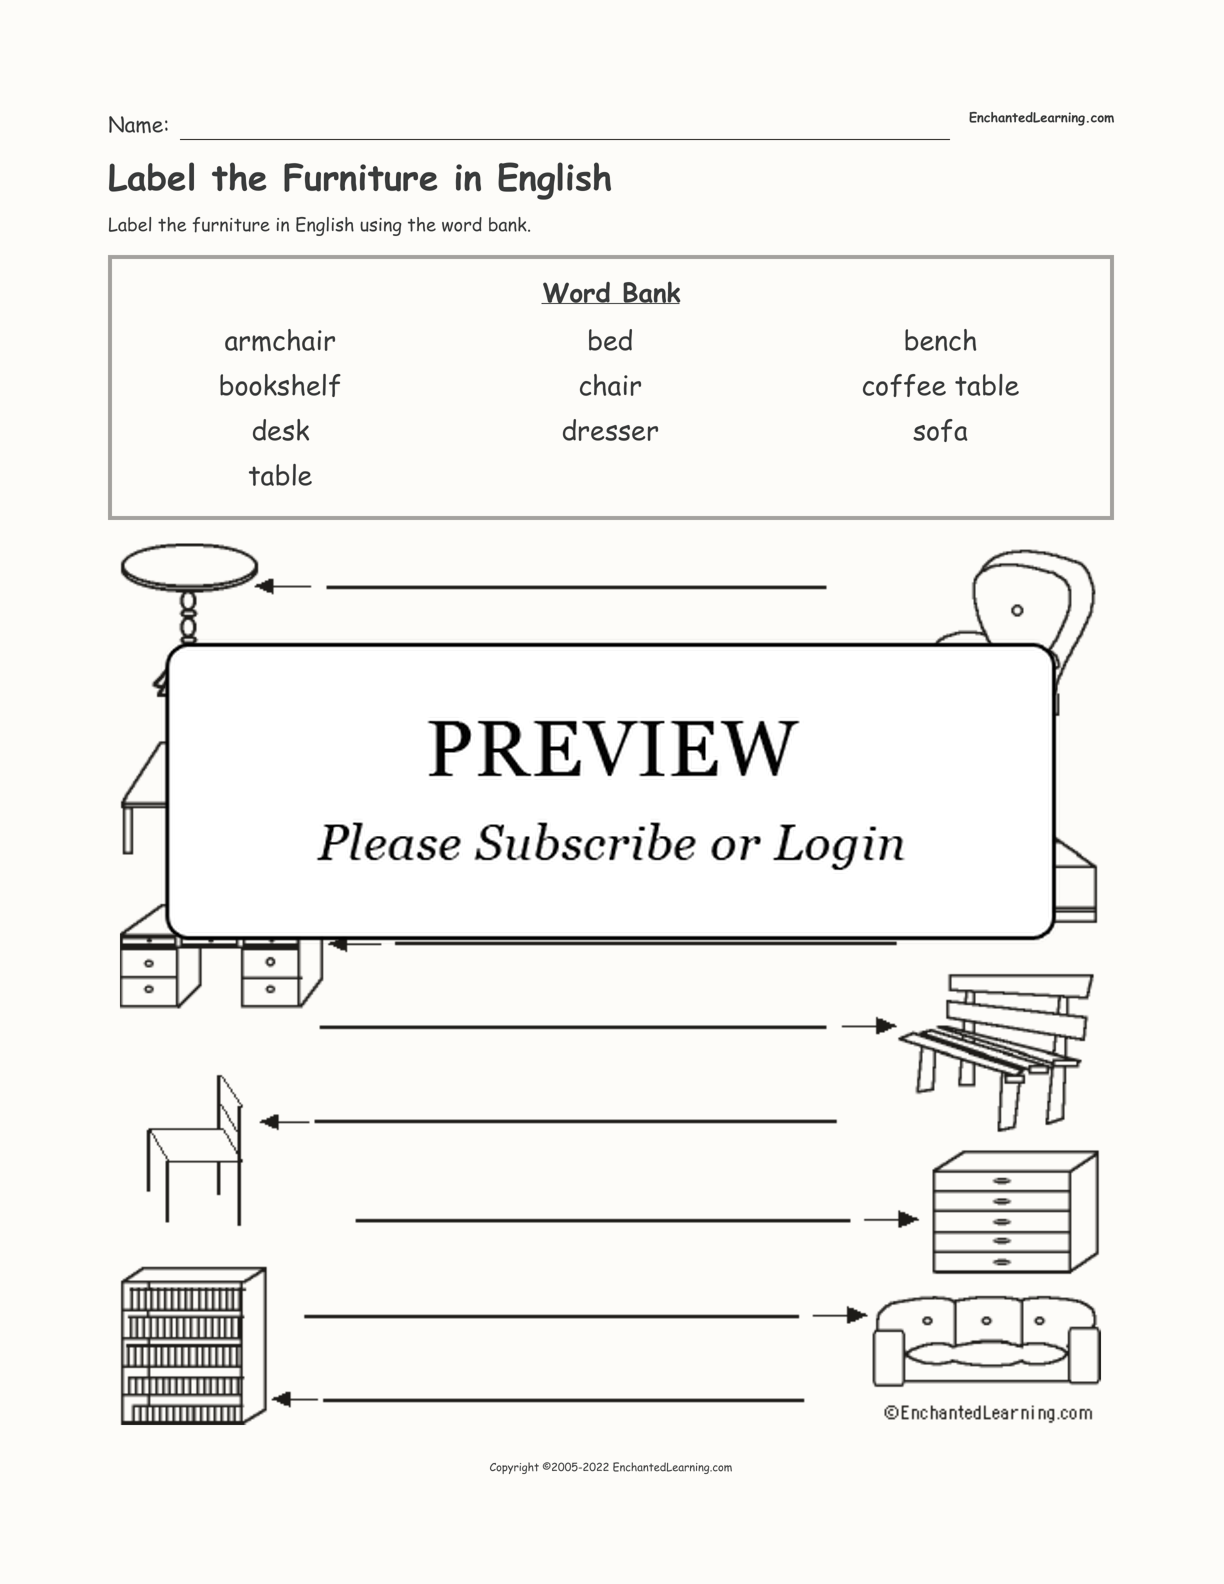 Label the Furniture in English interactive worksheet page 1